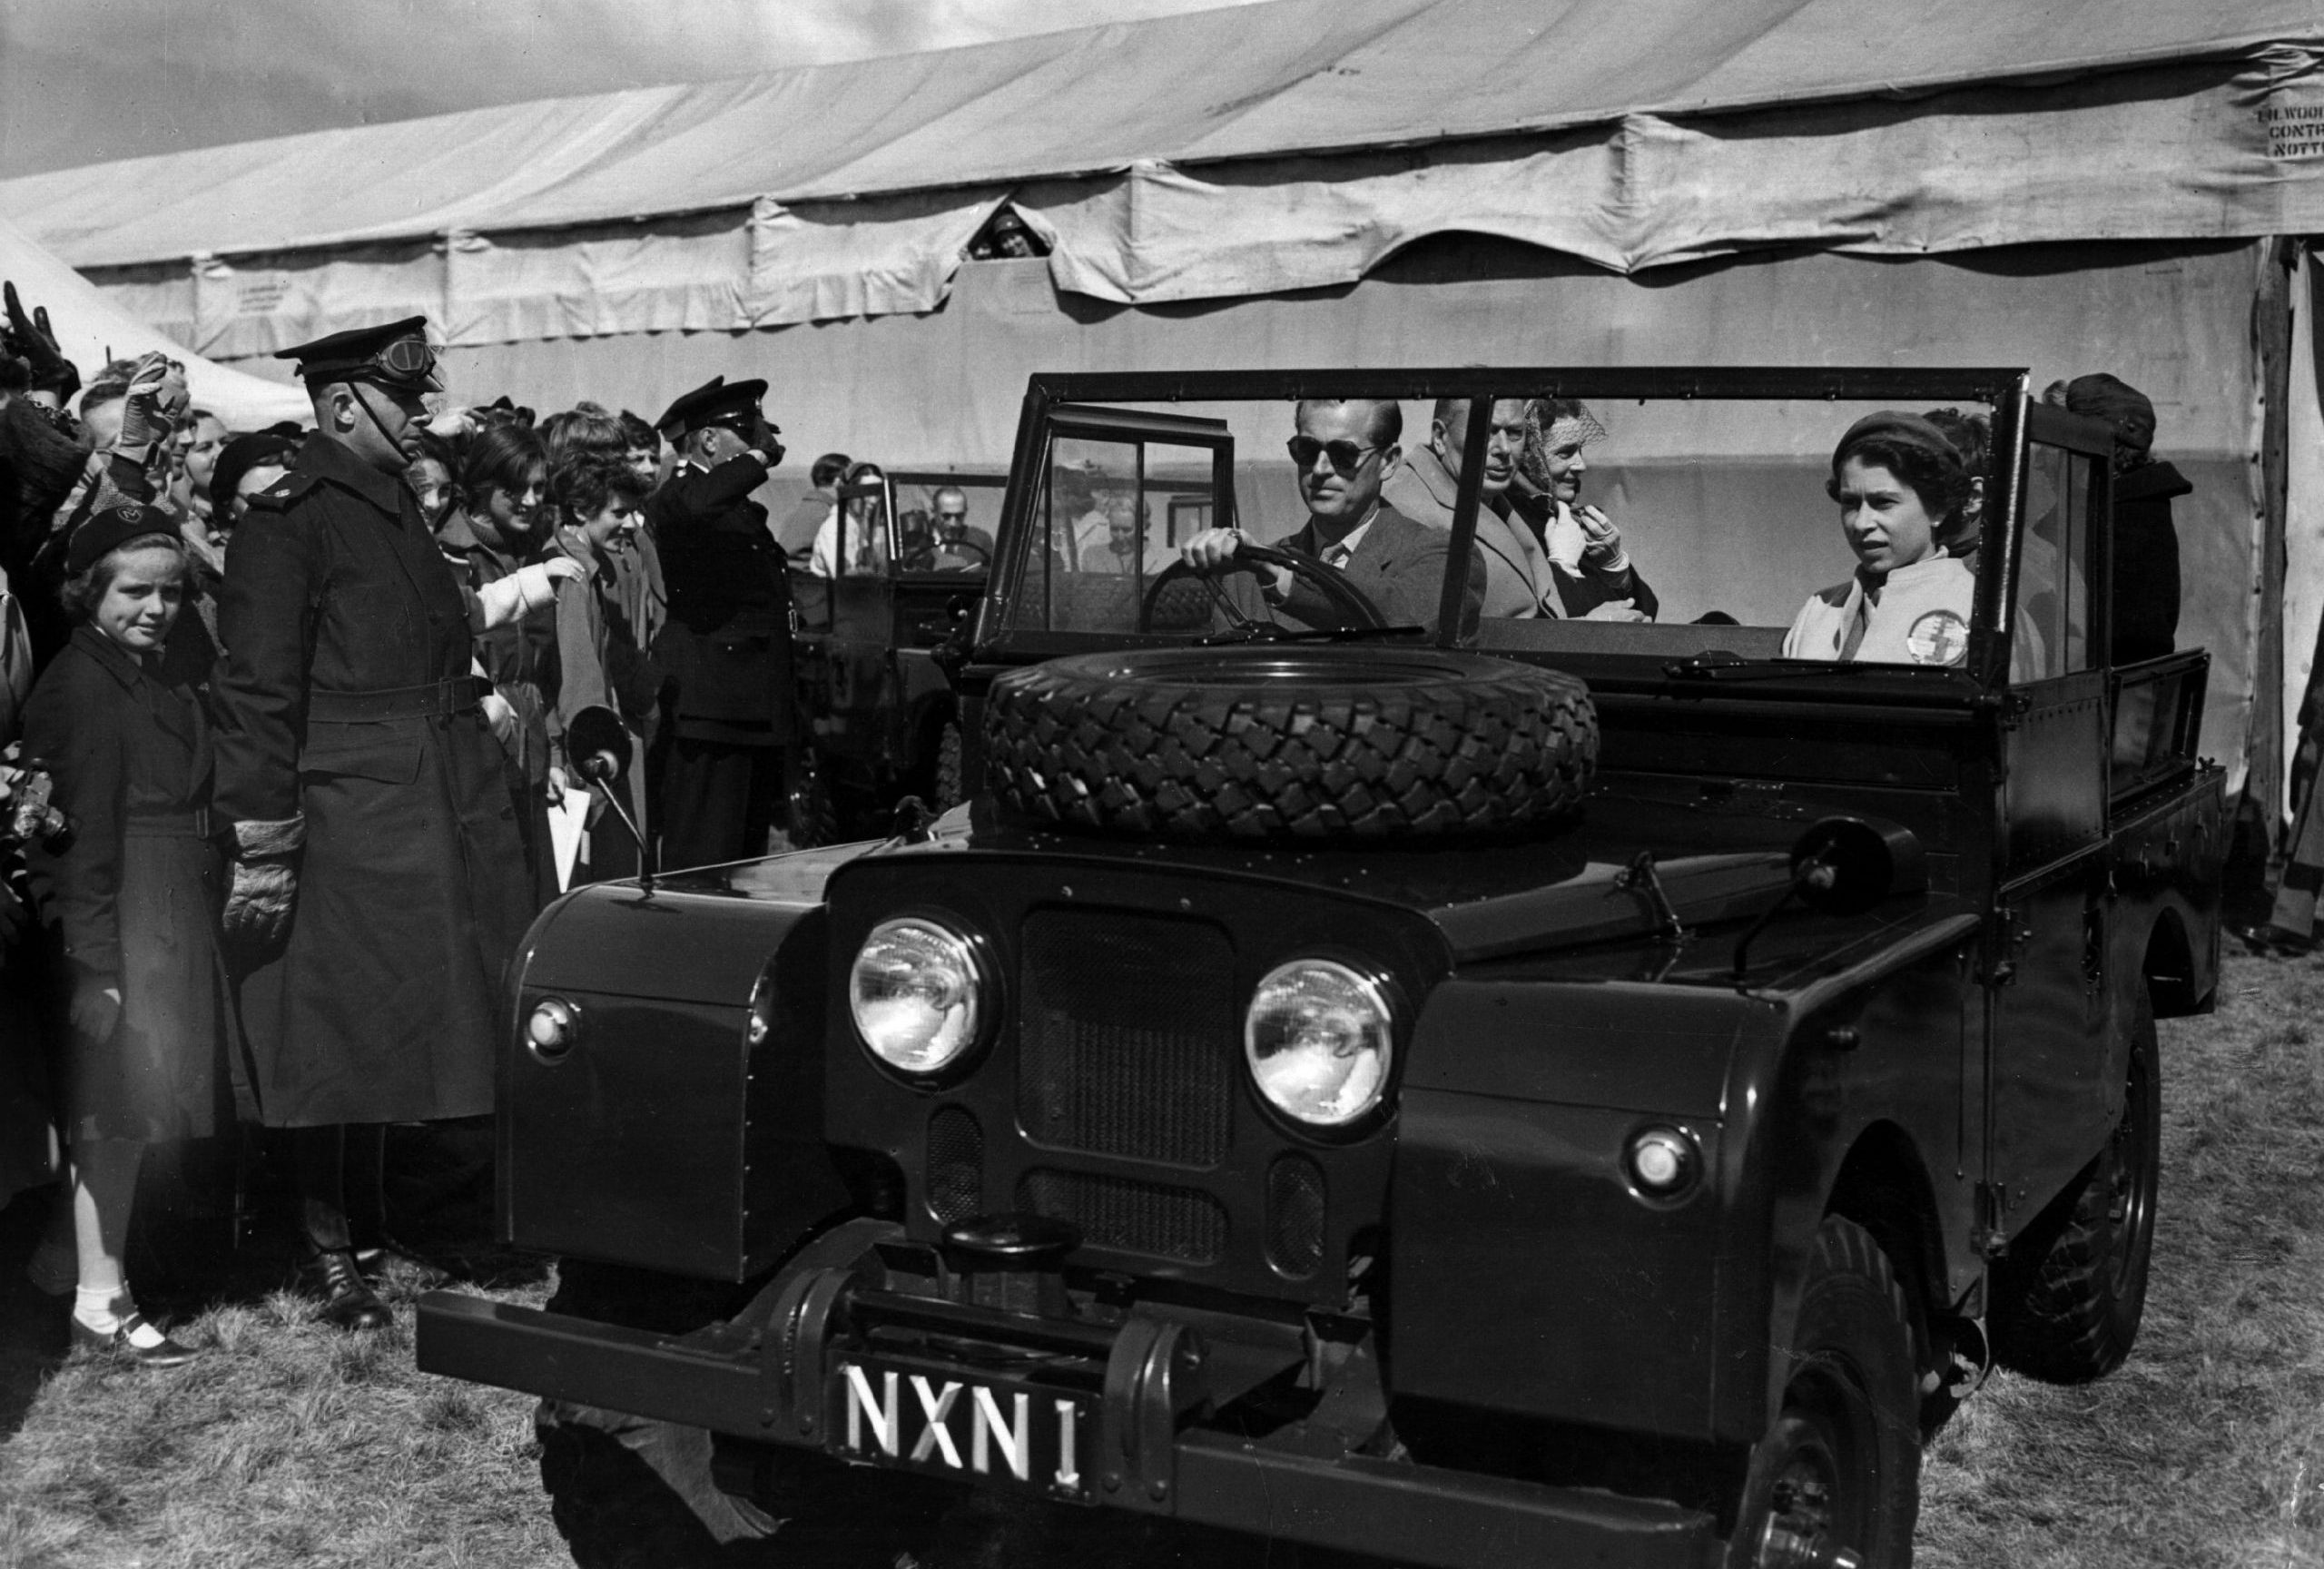 Prince Philip the driver and rider, pilot and mischief maker